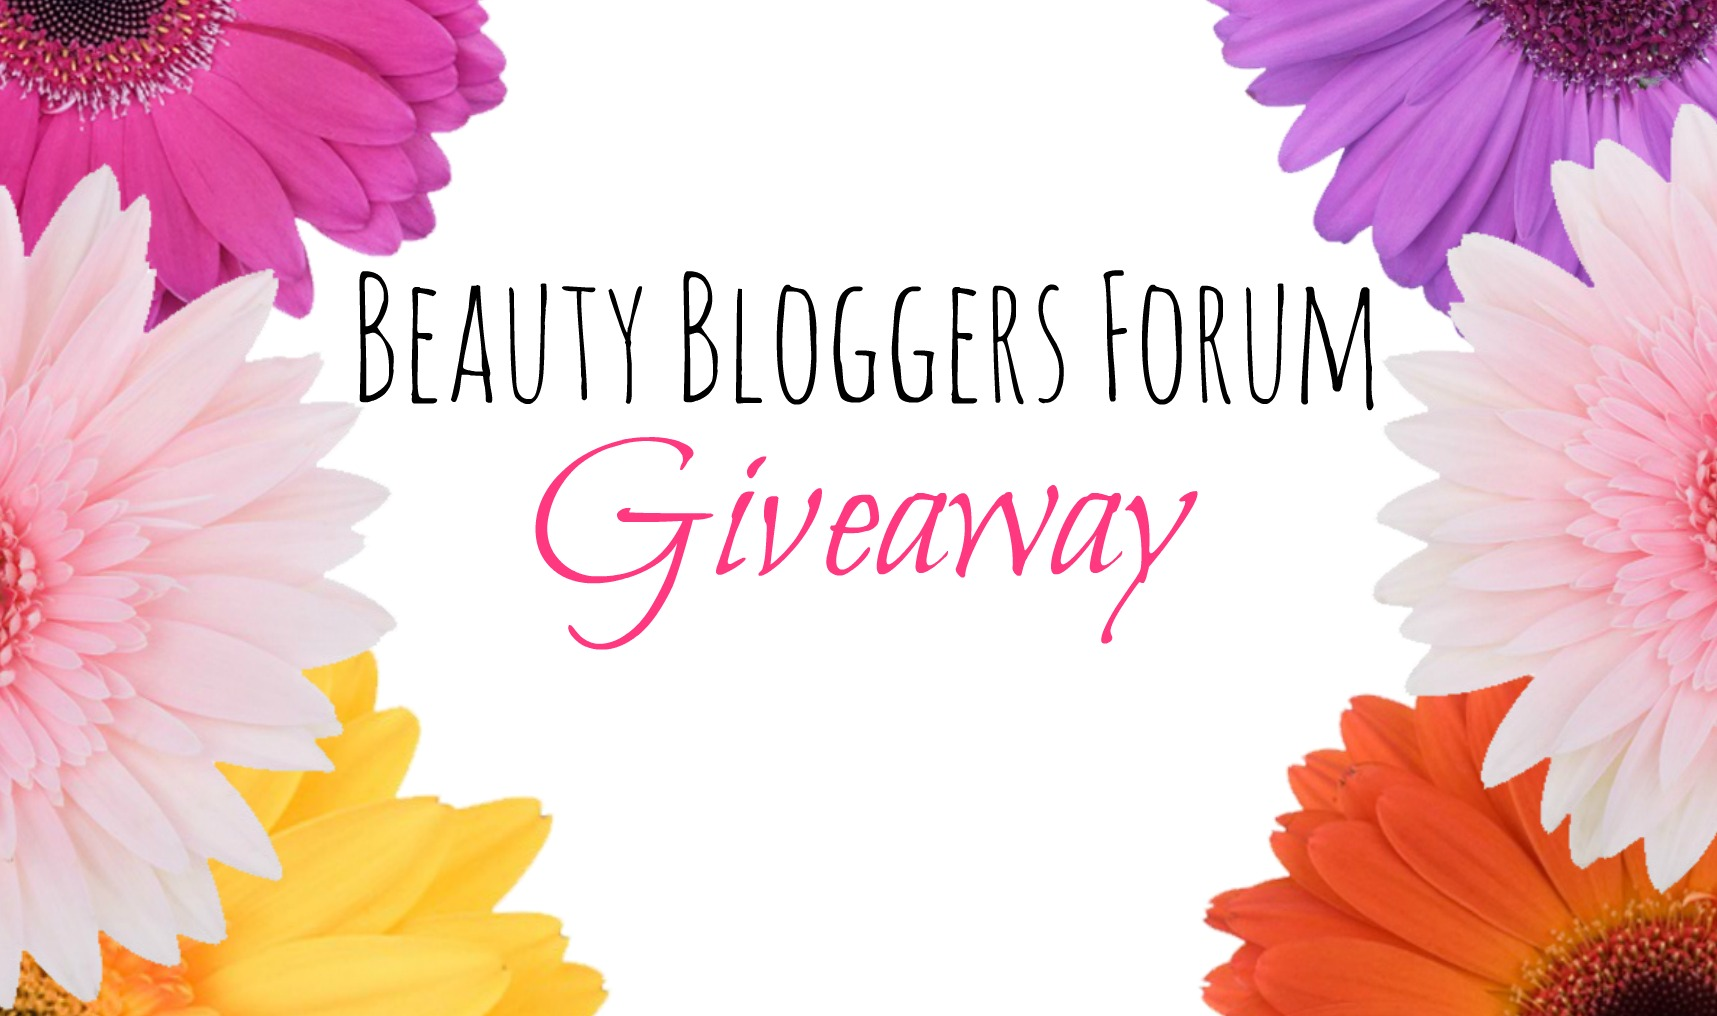 Last Chance to Enter Our 1st Beauty Bloggers Forum Giveaway for a Free Target Beauty Box! graphic